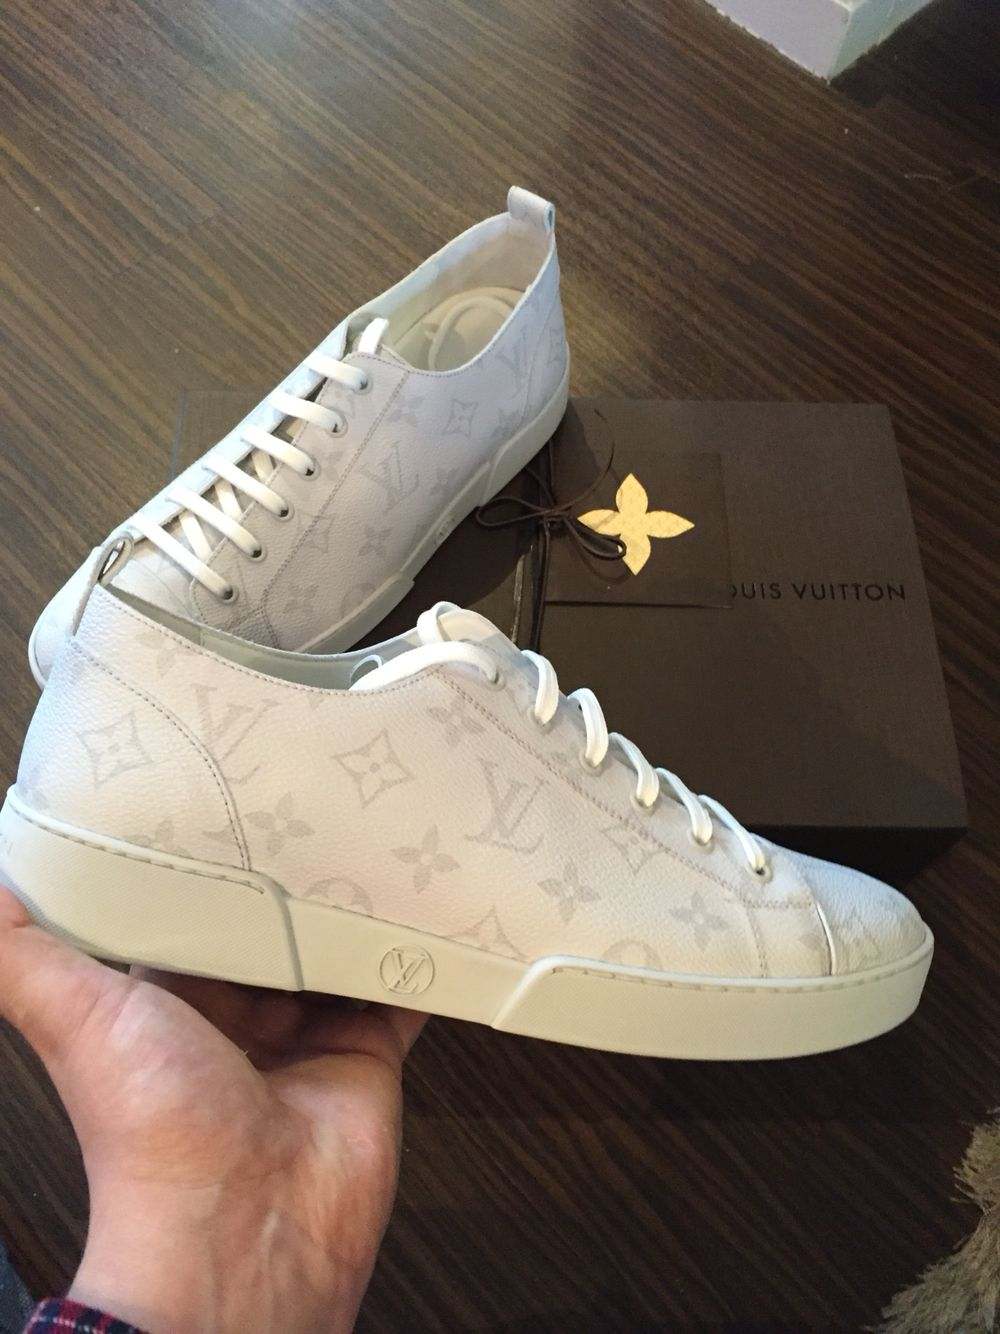 1fb7f0f3db9a New season Louis Vuitton low top sneakers. Available all sizes   apersonalaffair.co.uk